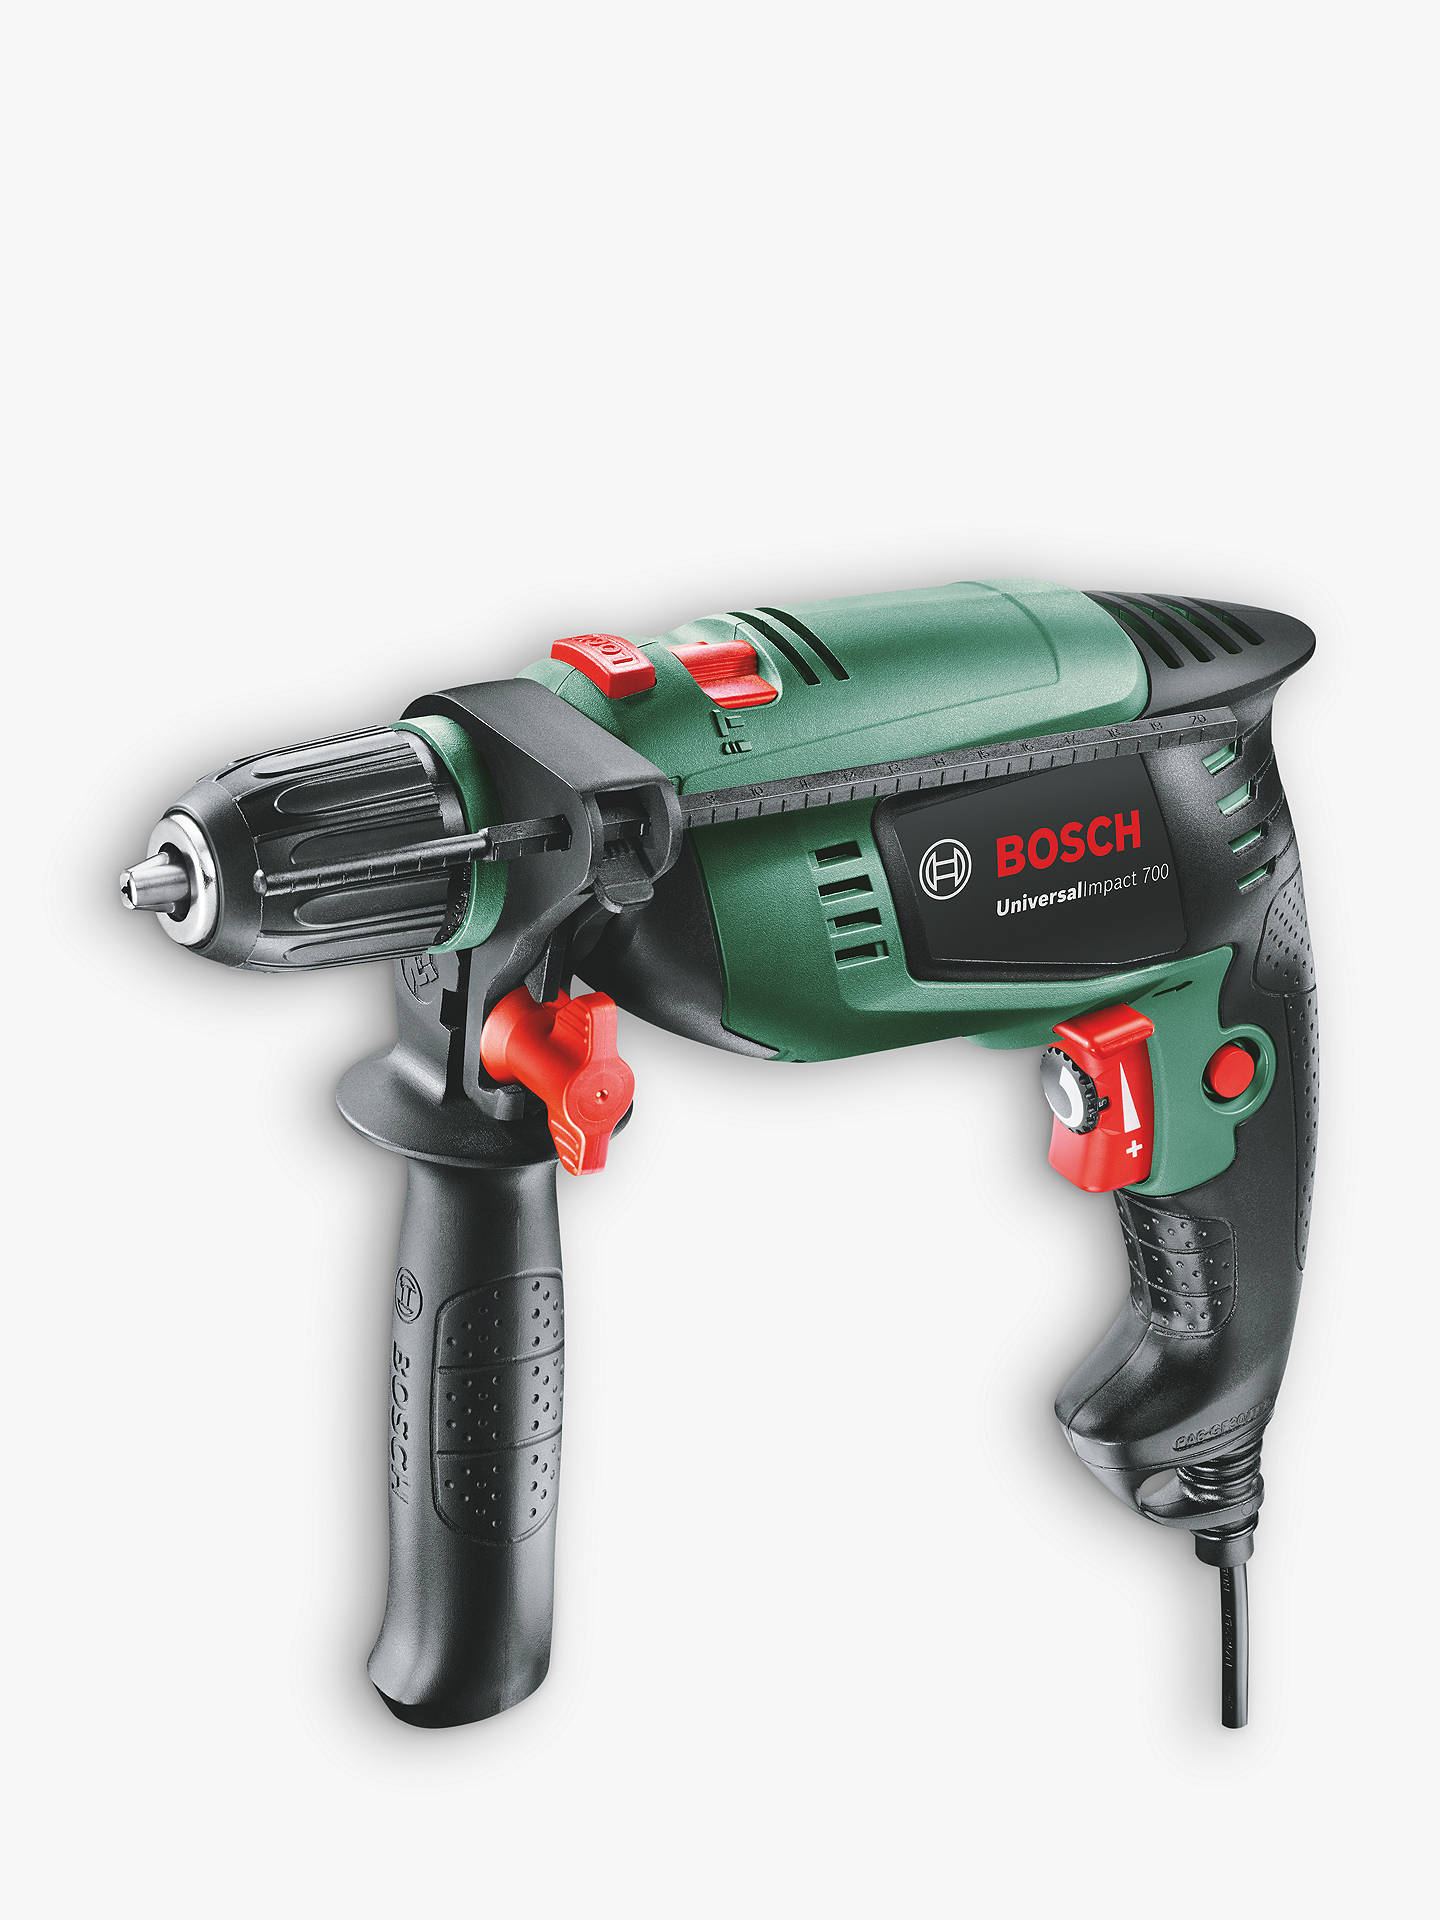 Buy Bosch UniversalImpact 700 Impact Drill Online at johnlewis.com